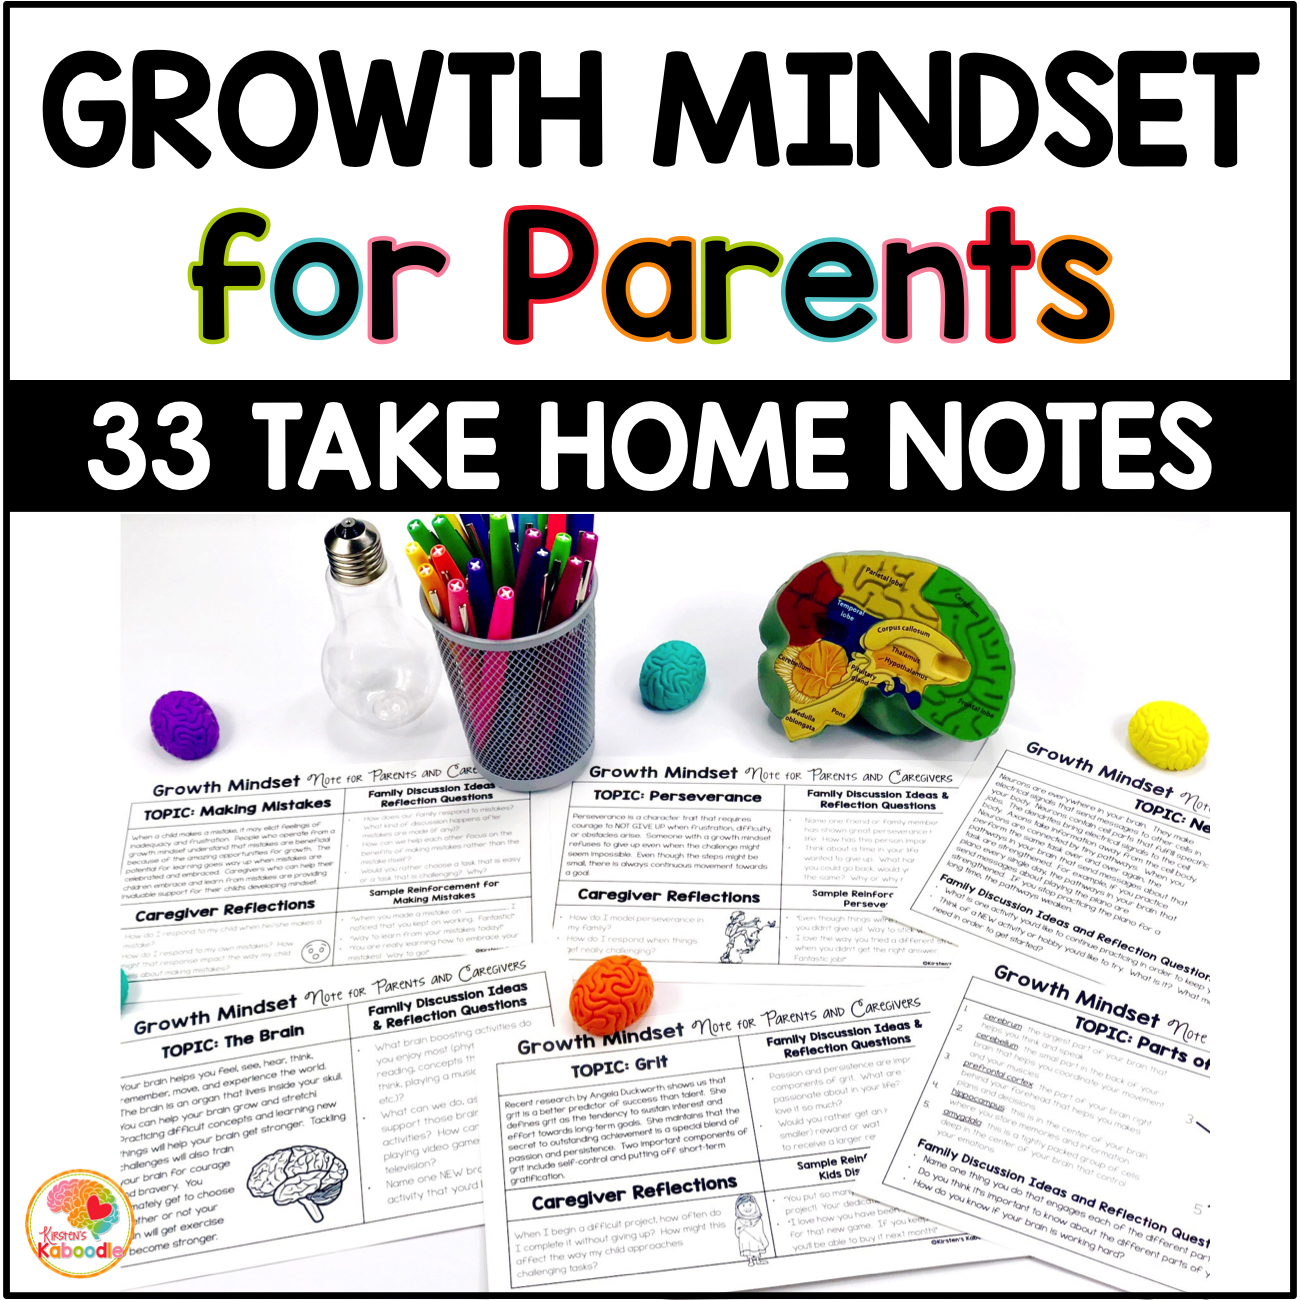 Growth Mindset Information for Parents